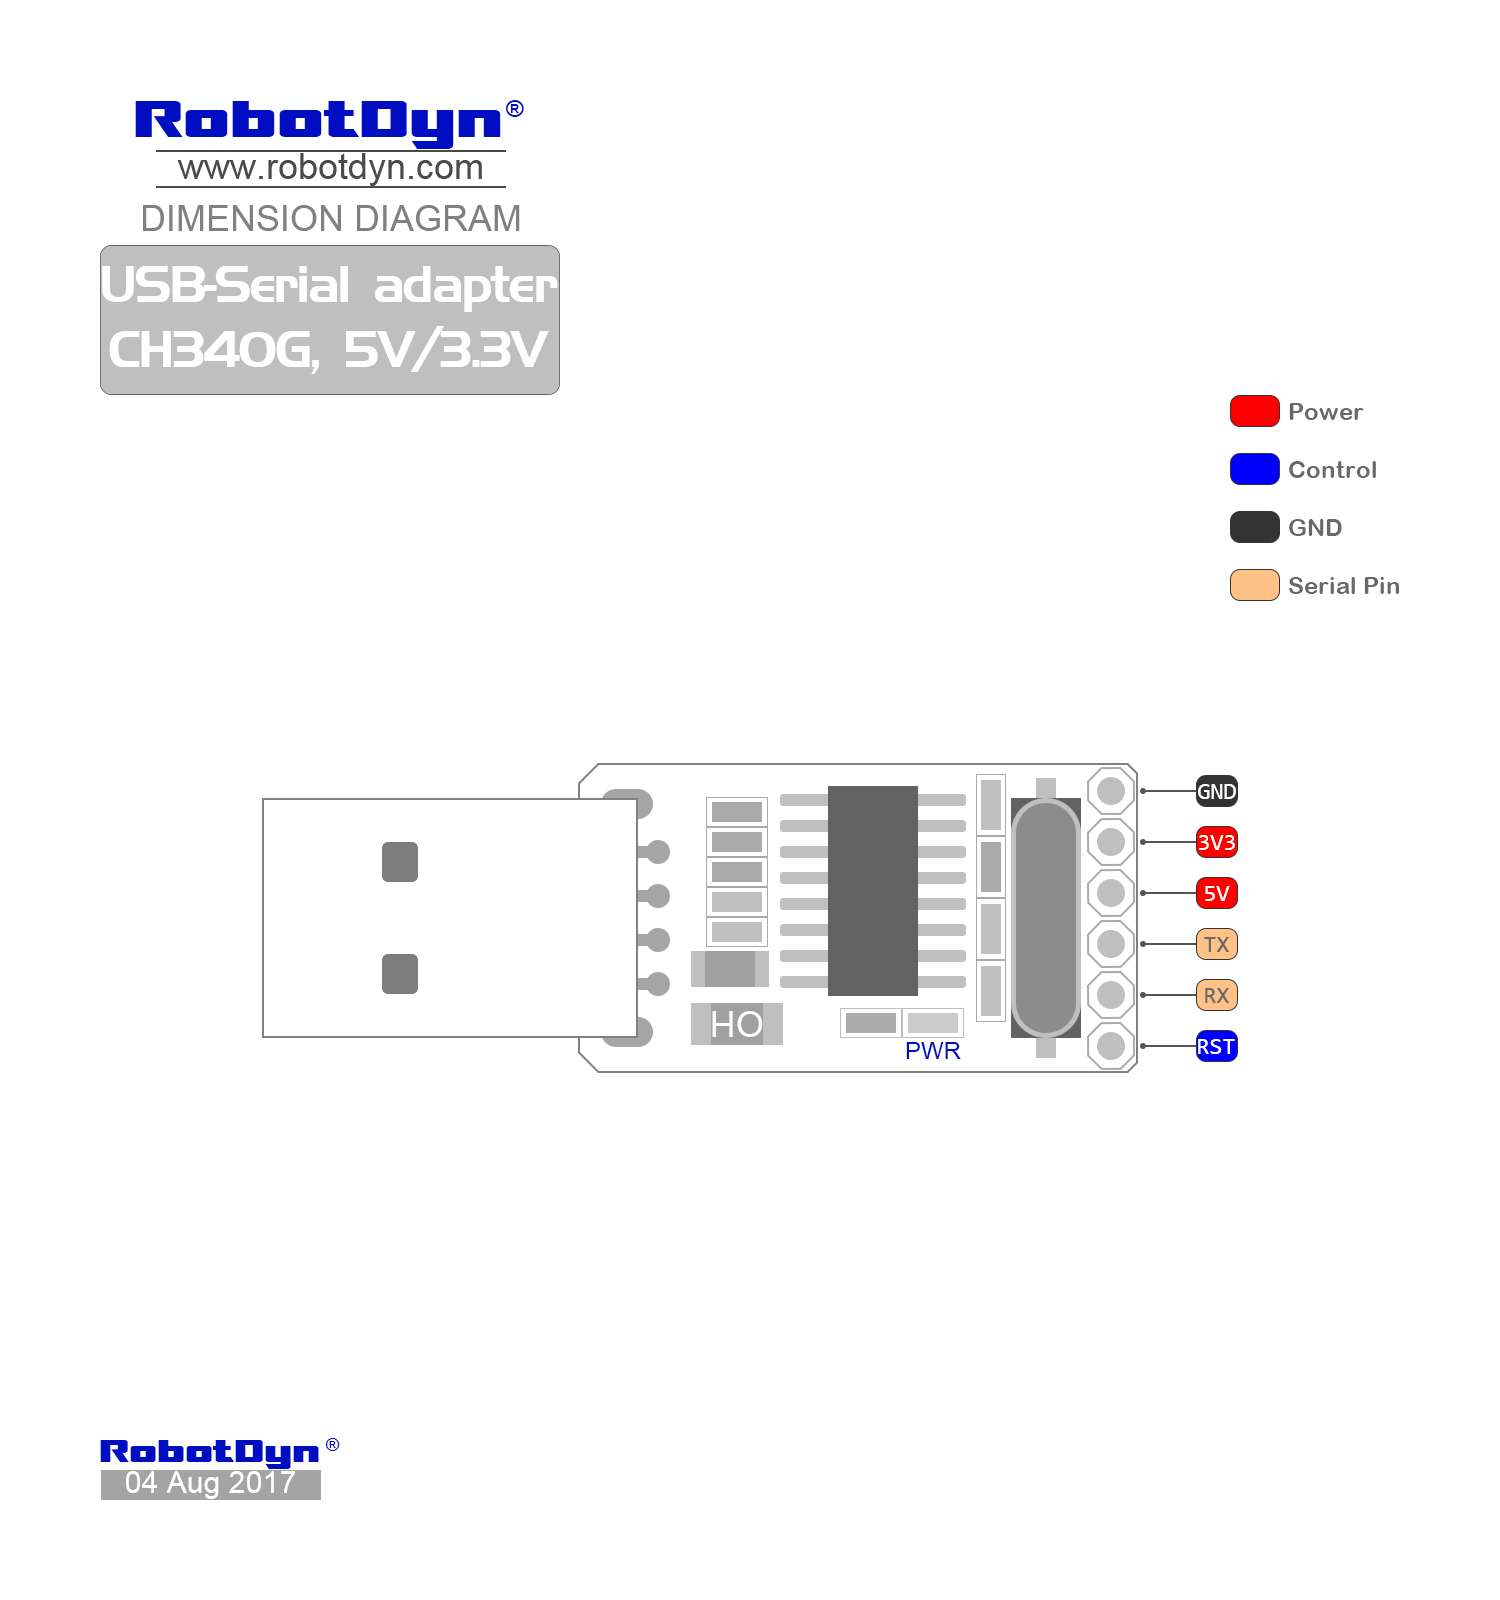 Schematic Diagram Online: USB-Serial Adapter CH340G, 5V/3.3V